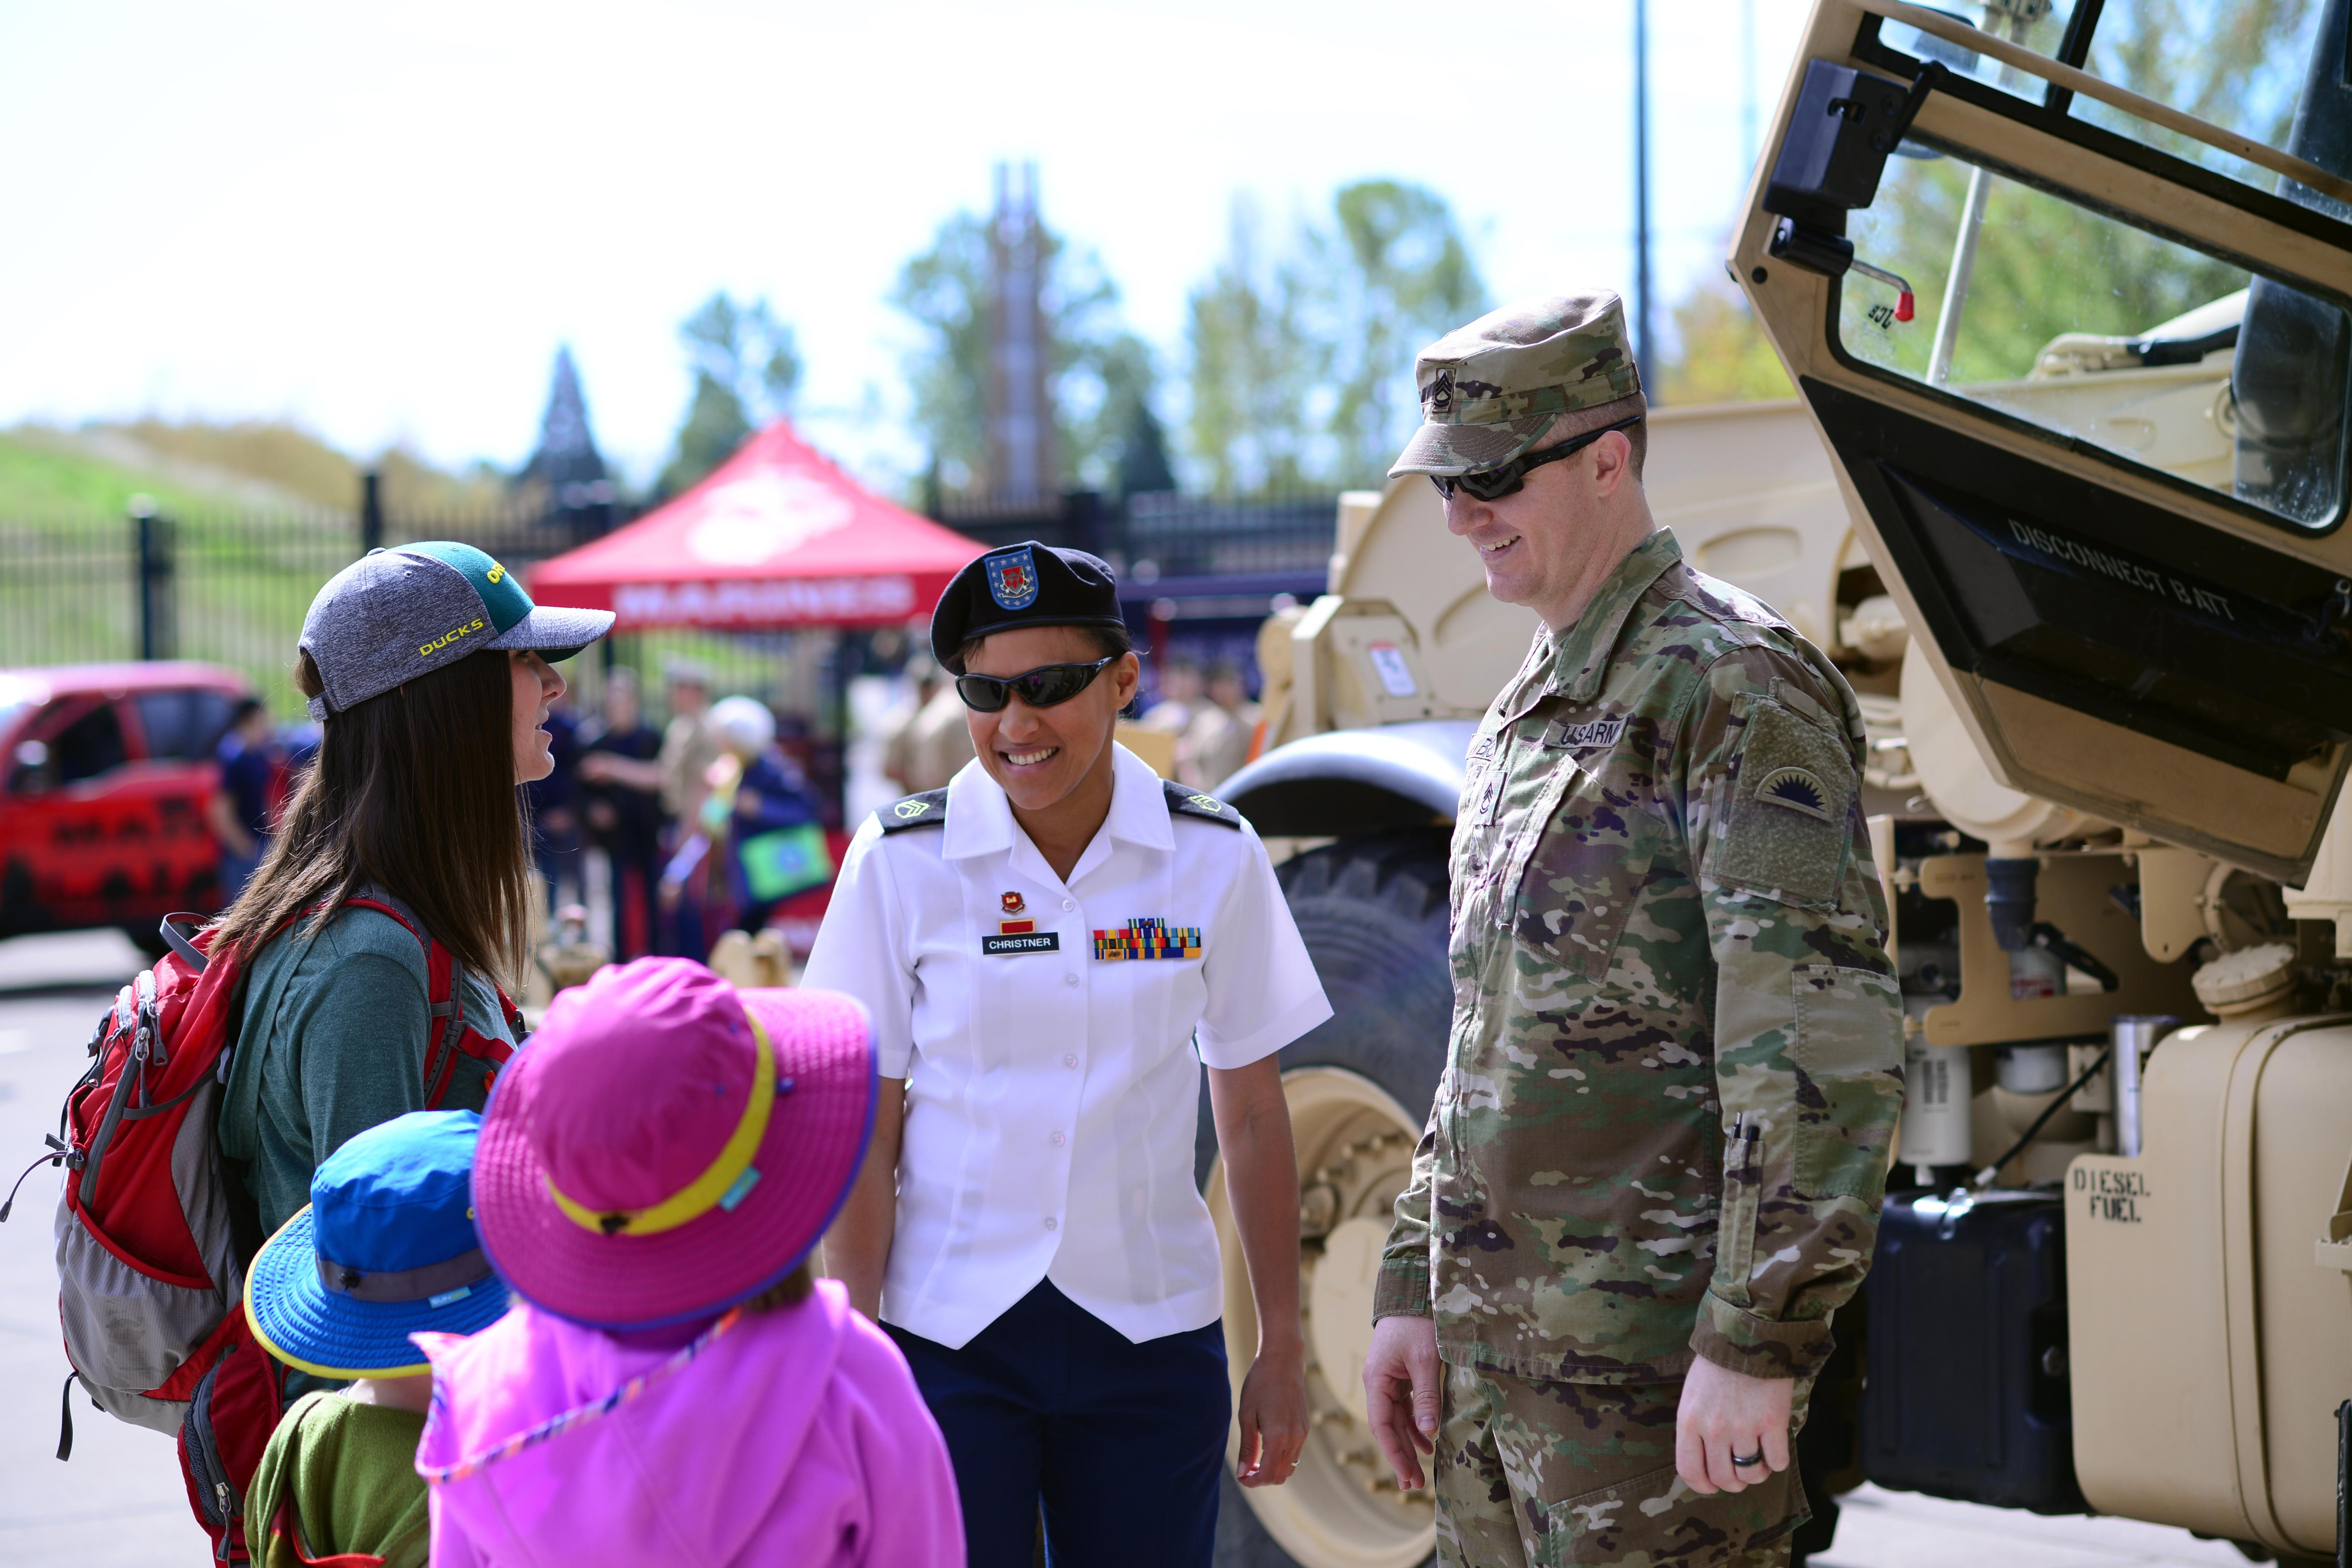 Oregon National Guard Soldiers greet fans in front of Autzen Stadium where military equipment was on display for the University of Oregon's Spring Game, April 29, 2017, in Eugene, Oregon. Veterans from every branch of service participated in Military Appreciation Day activities during the game. (Photo by Sgt. 1st Class April Davis, Oregon Military Department Public Affairs)